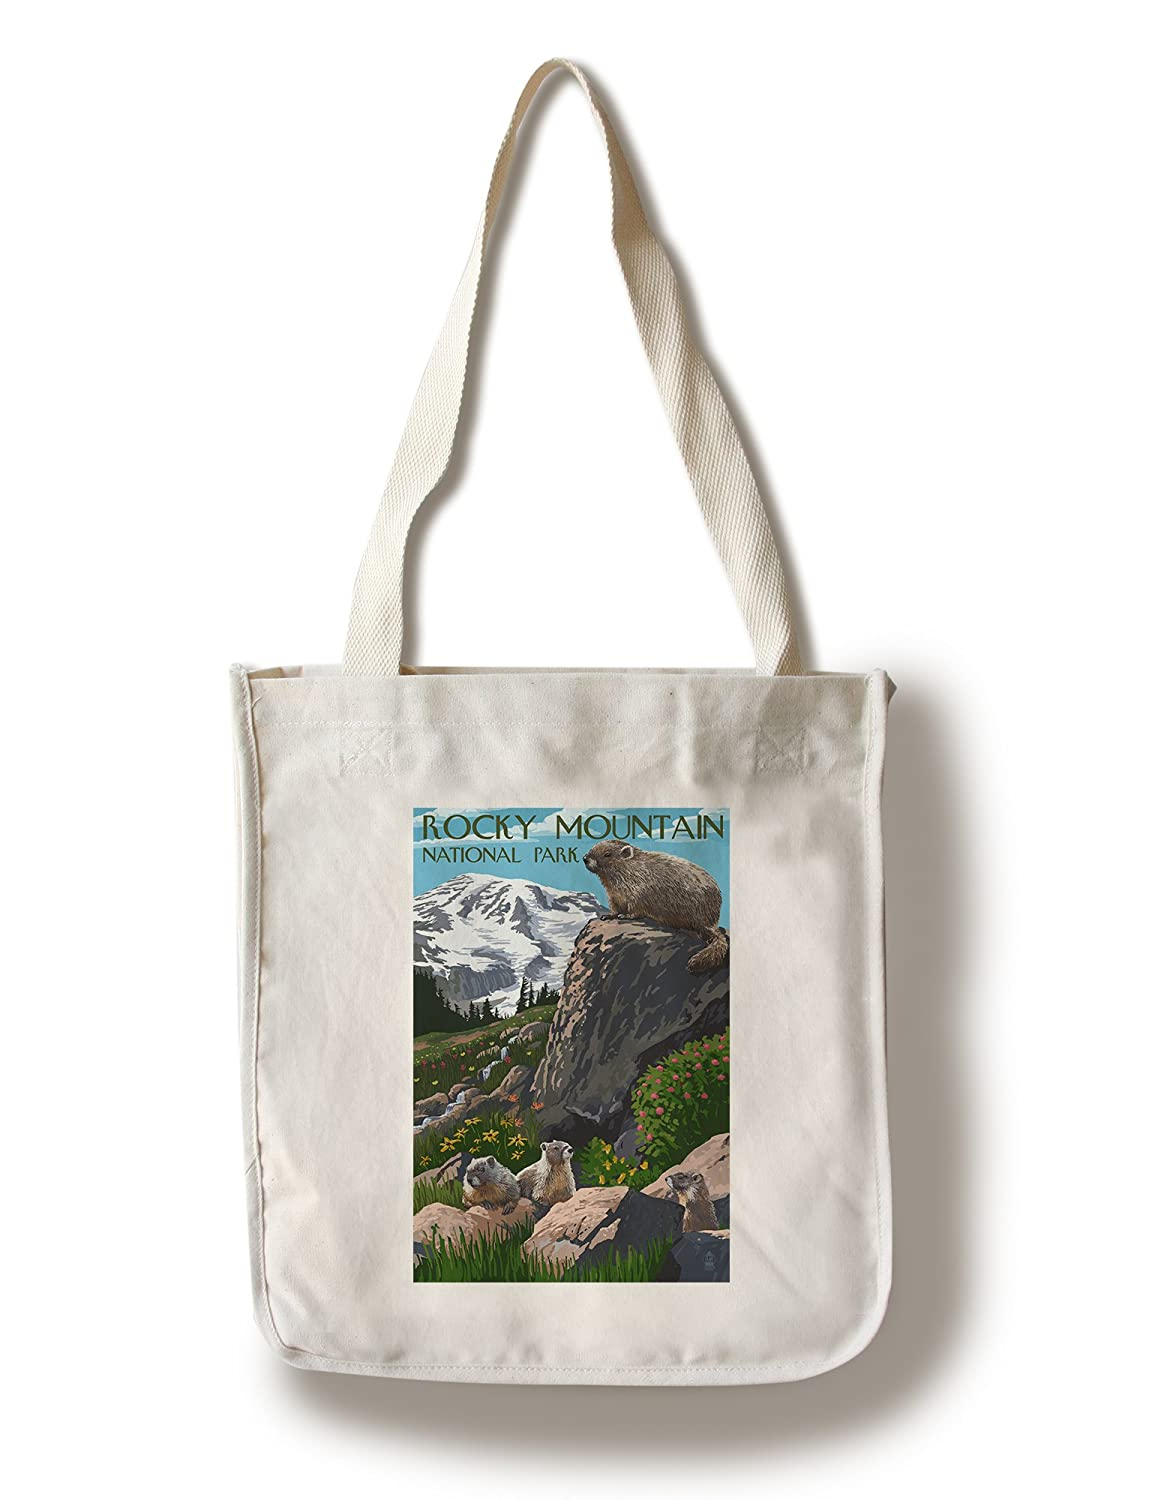 ロッキーマウンテン国立公園 – Marmots Canvas Tote Bag LANT-46098-TT B01841G1UE Canvas Tote Bag